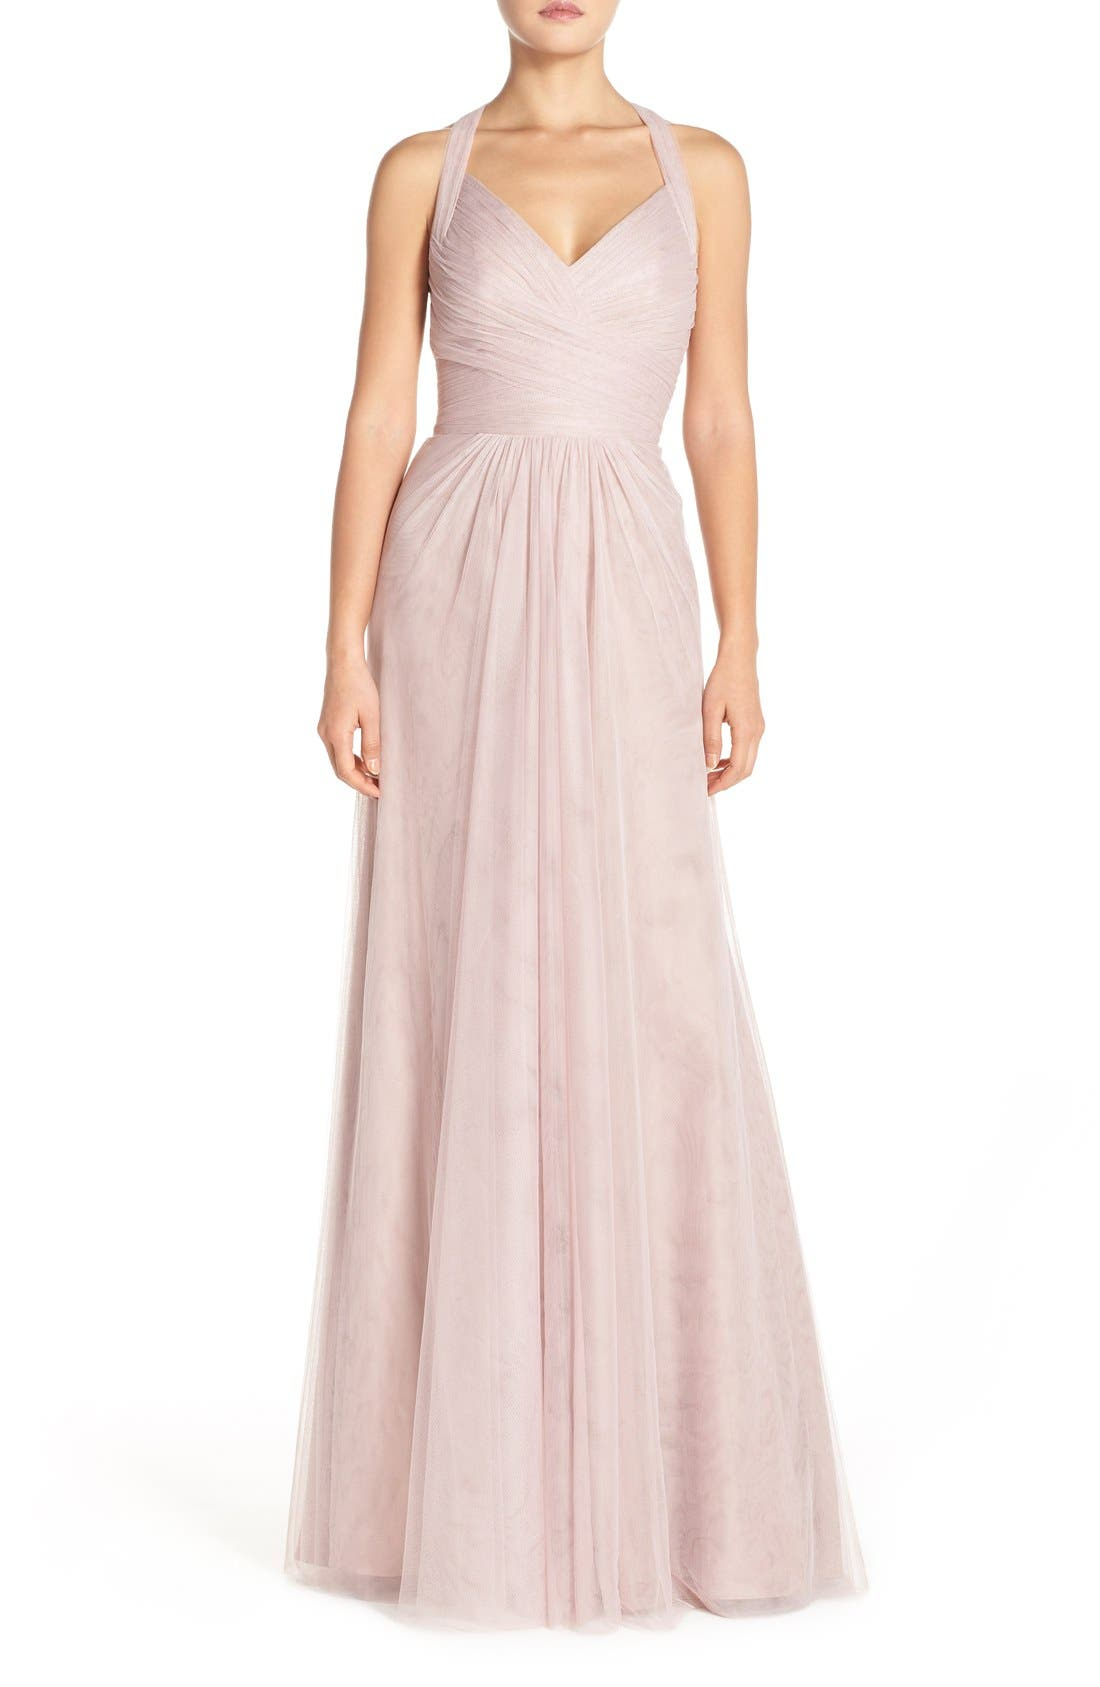 Alternate Image 1 Selected - Monique Lhuillier Bridesmaids Sleeveless V-Neck Tulle Gown